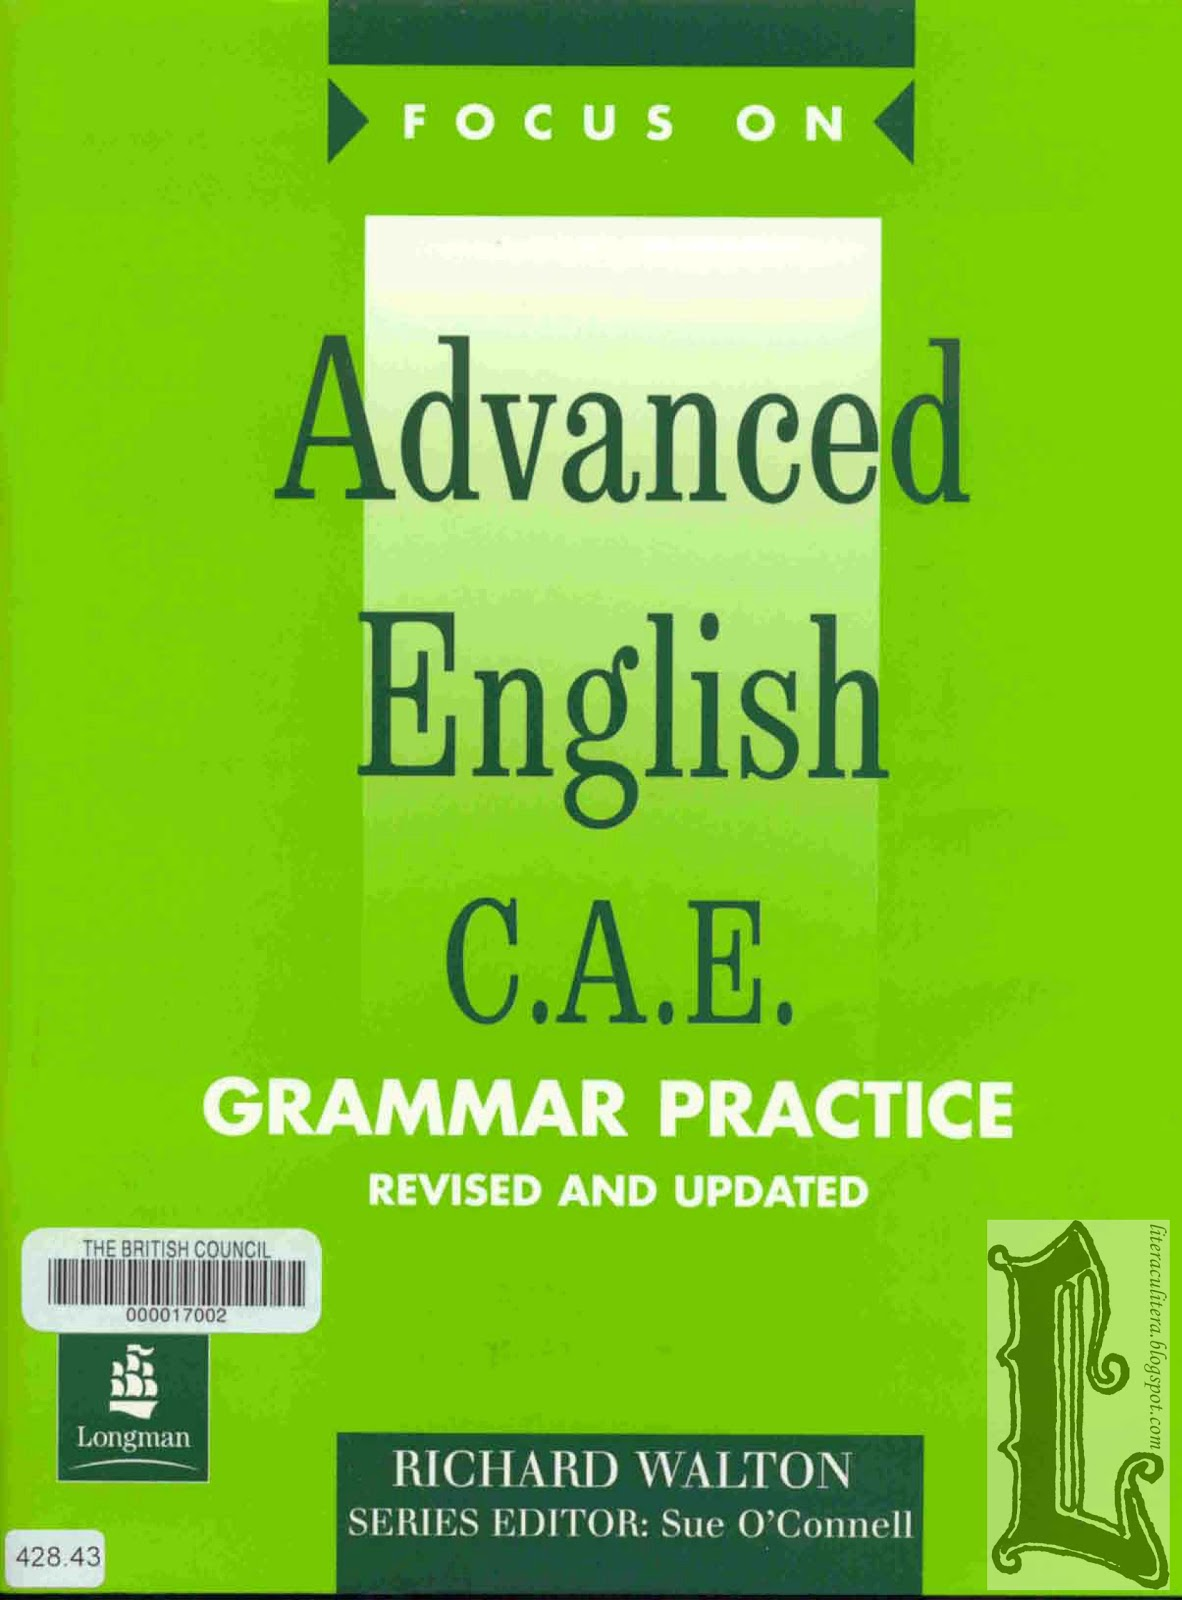 longman english grammar practice for advanced students pdf